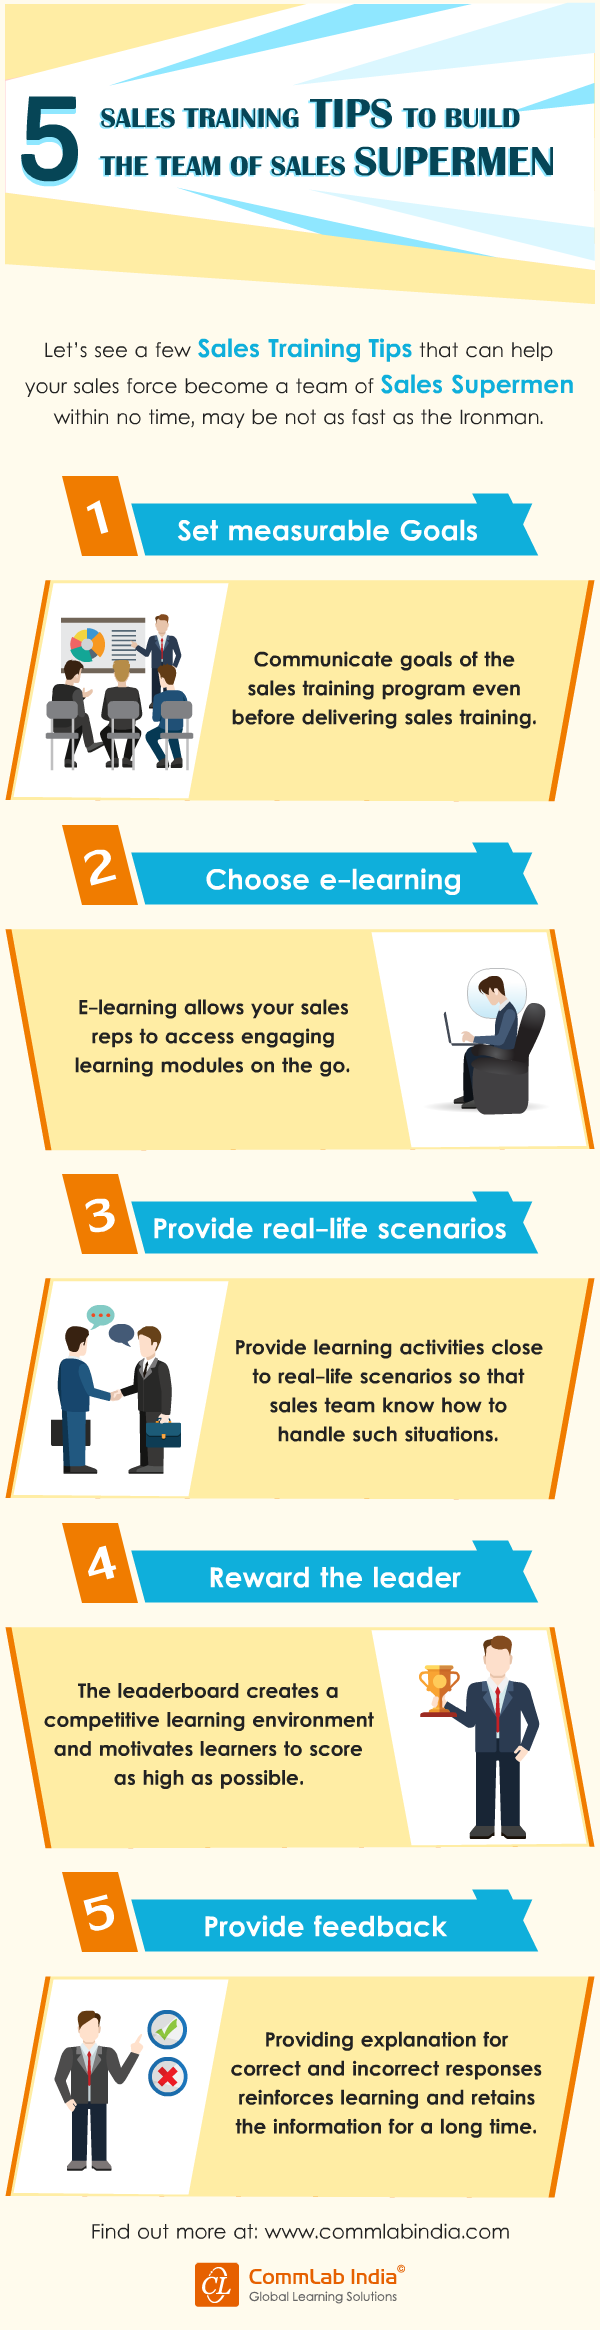 5 Sales Training Tips to Build the Team of Sales Supermen [Infographic]